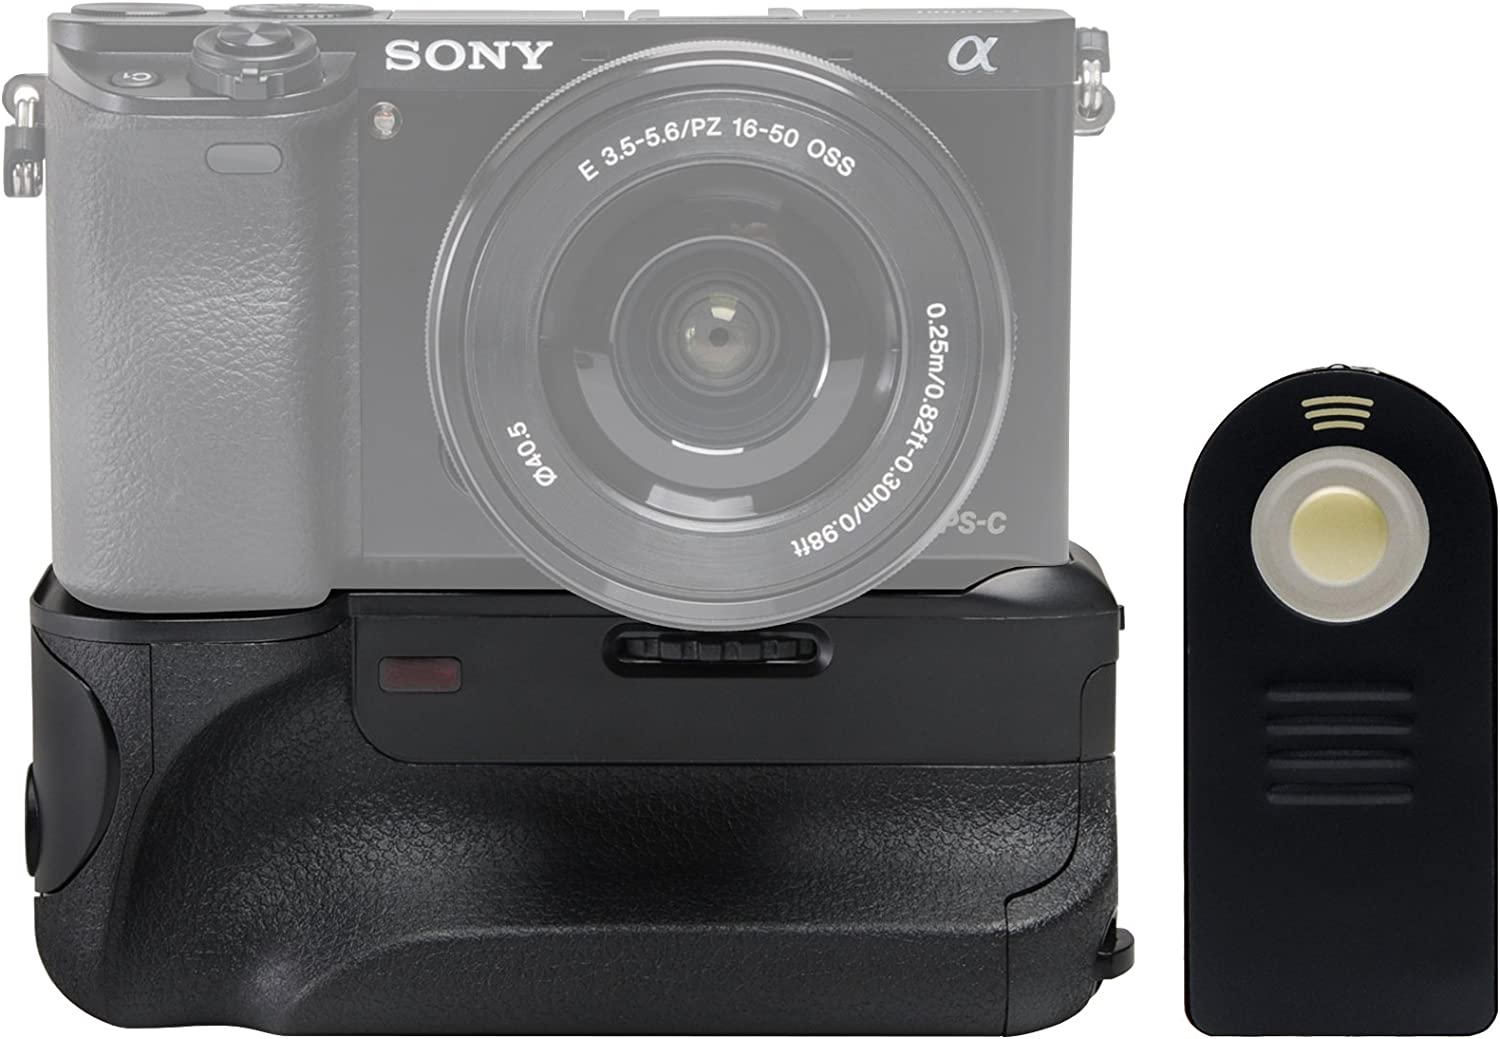 2 Batteries /& Charger Strap Kit Vivitar Deluxe Power Battery Grip for Sony Alpha A6000 /& A6400 Camera with Wireless Remote